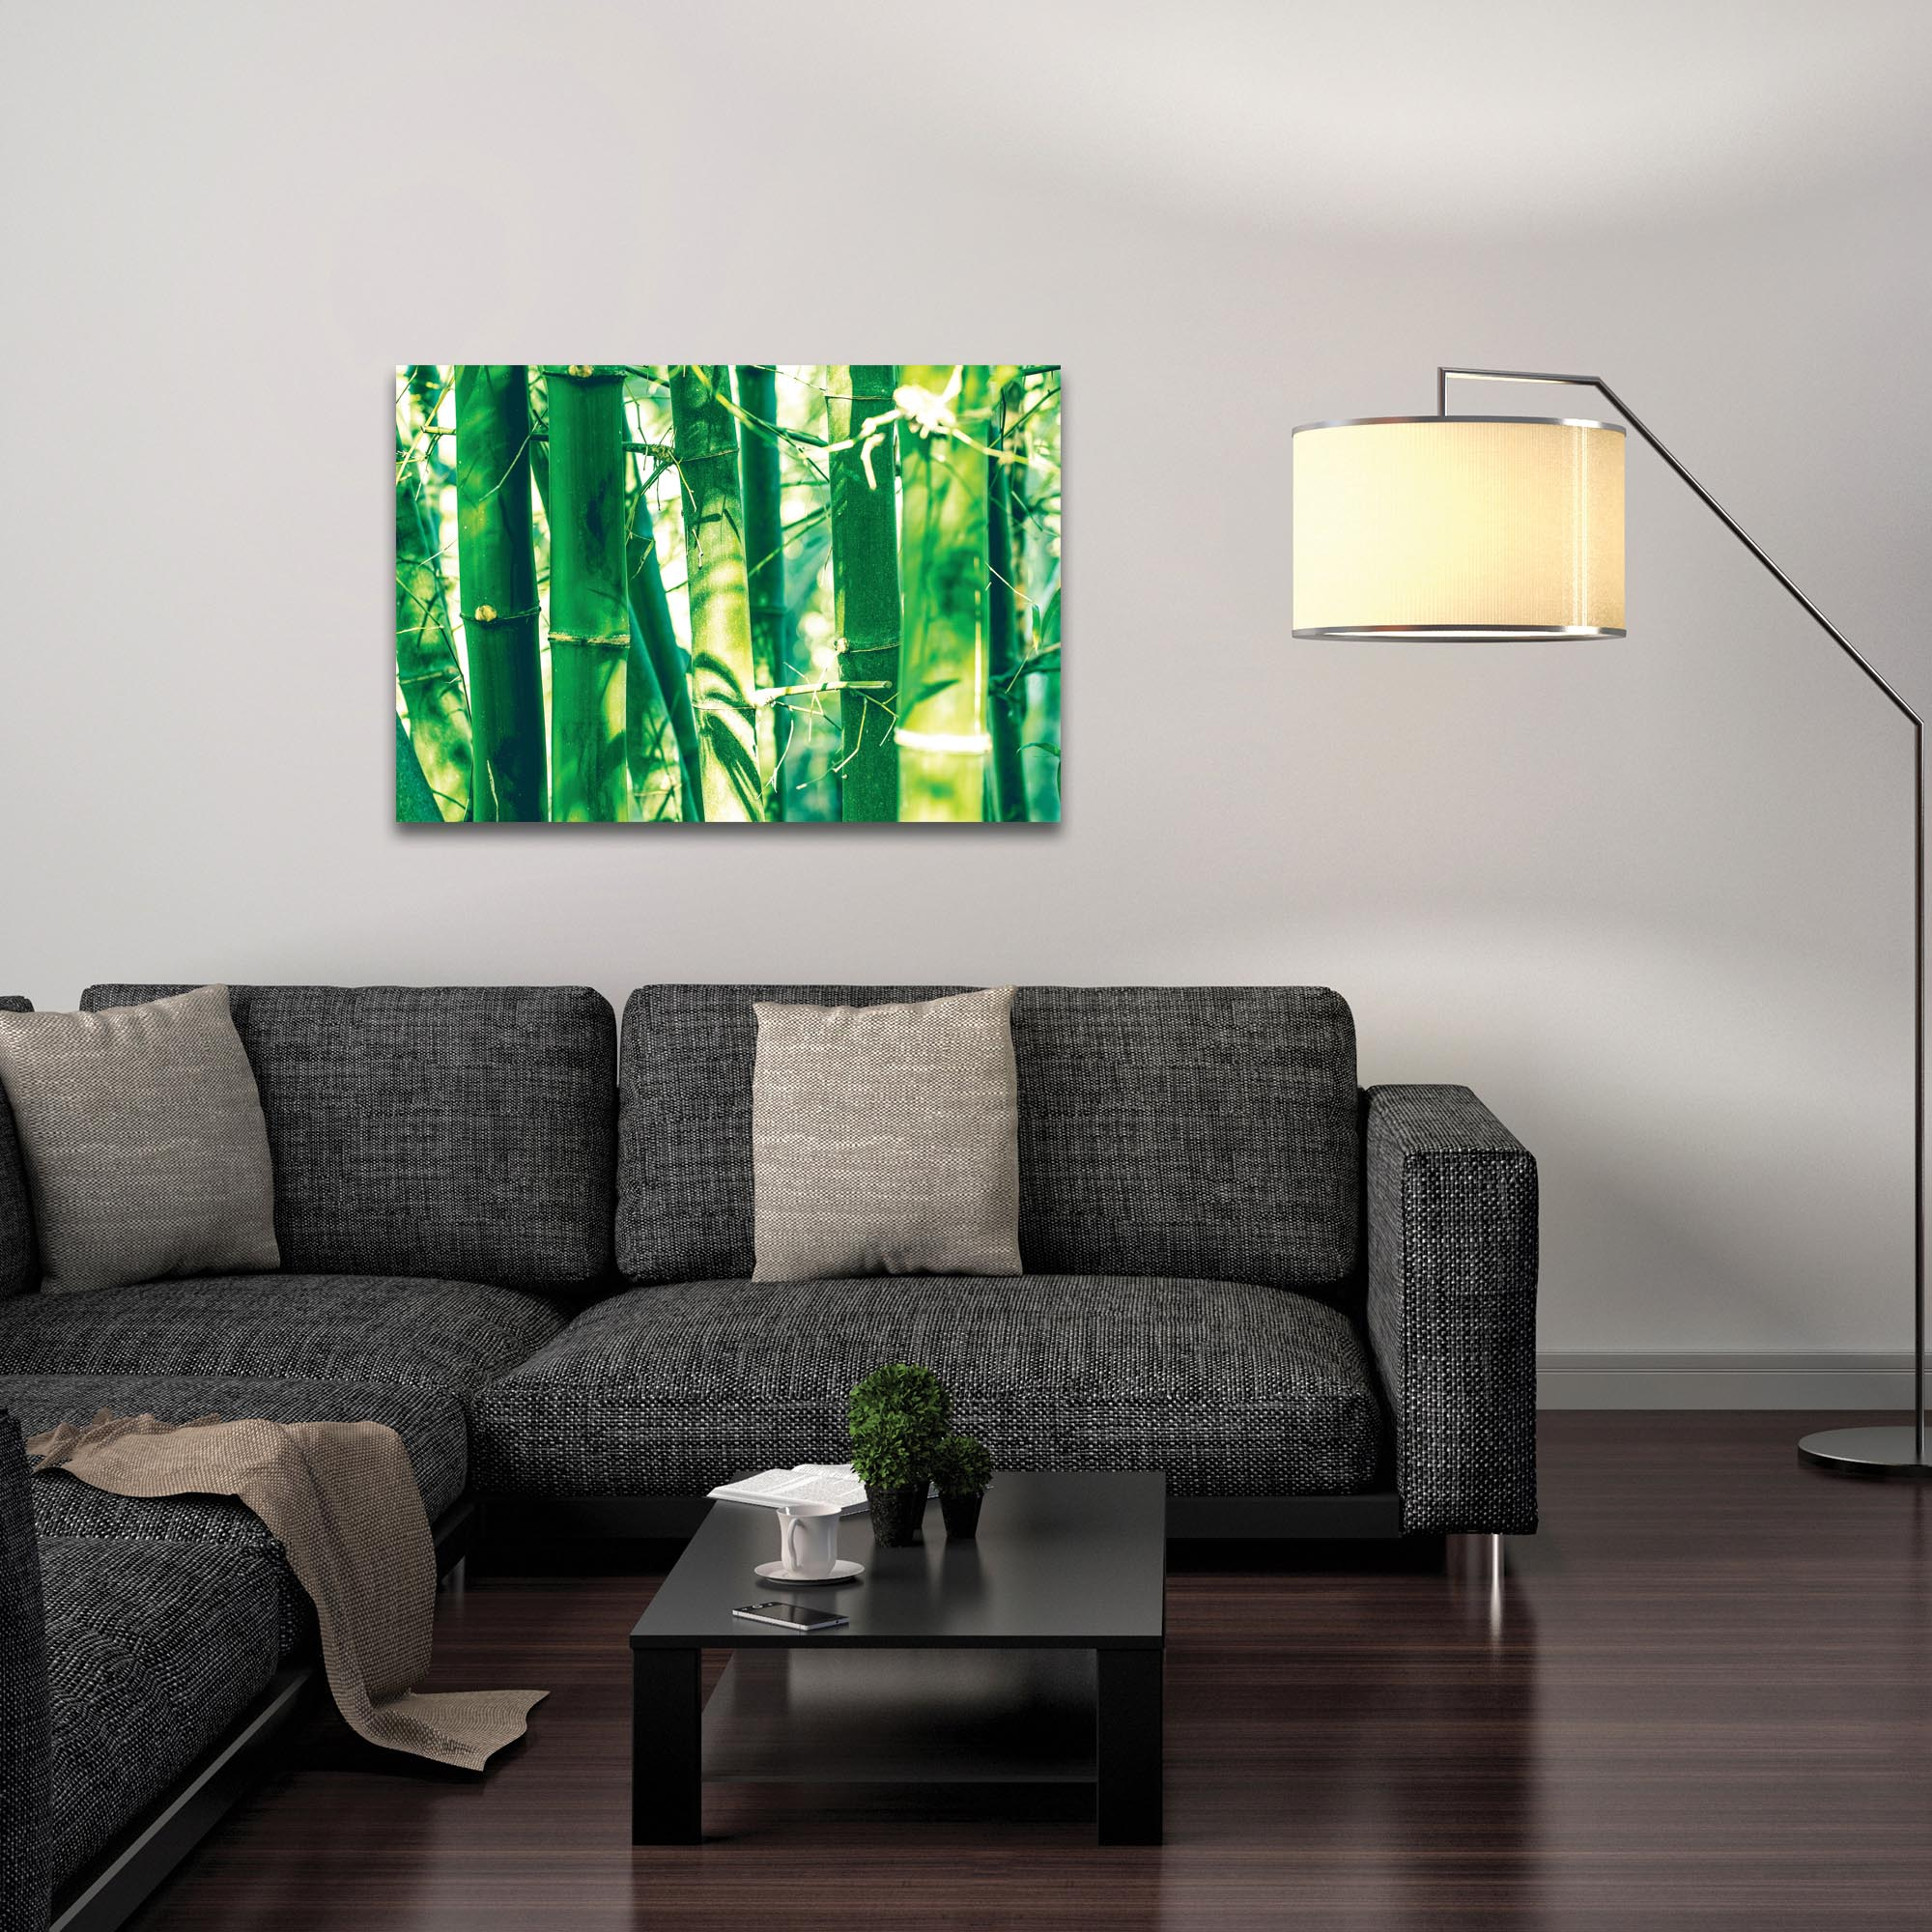 Asian Wall Art 'Bamboo Forest' - Bamboo Decor on Metal or Plexiglass - Lifestyle View